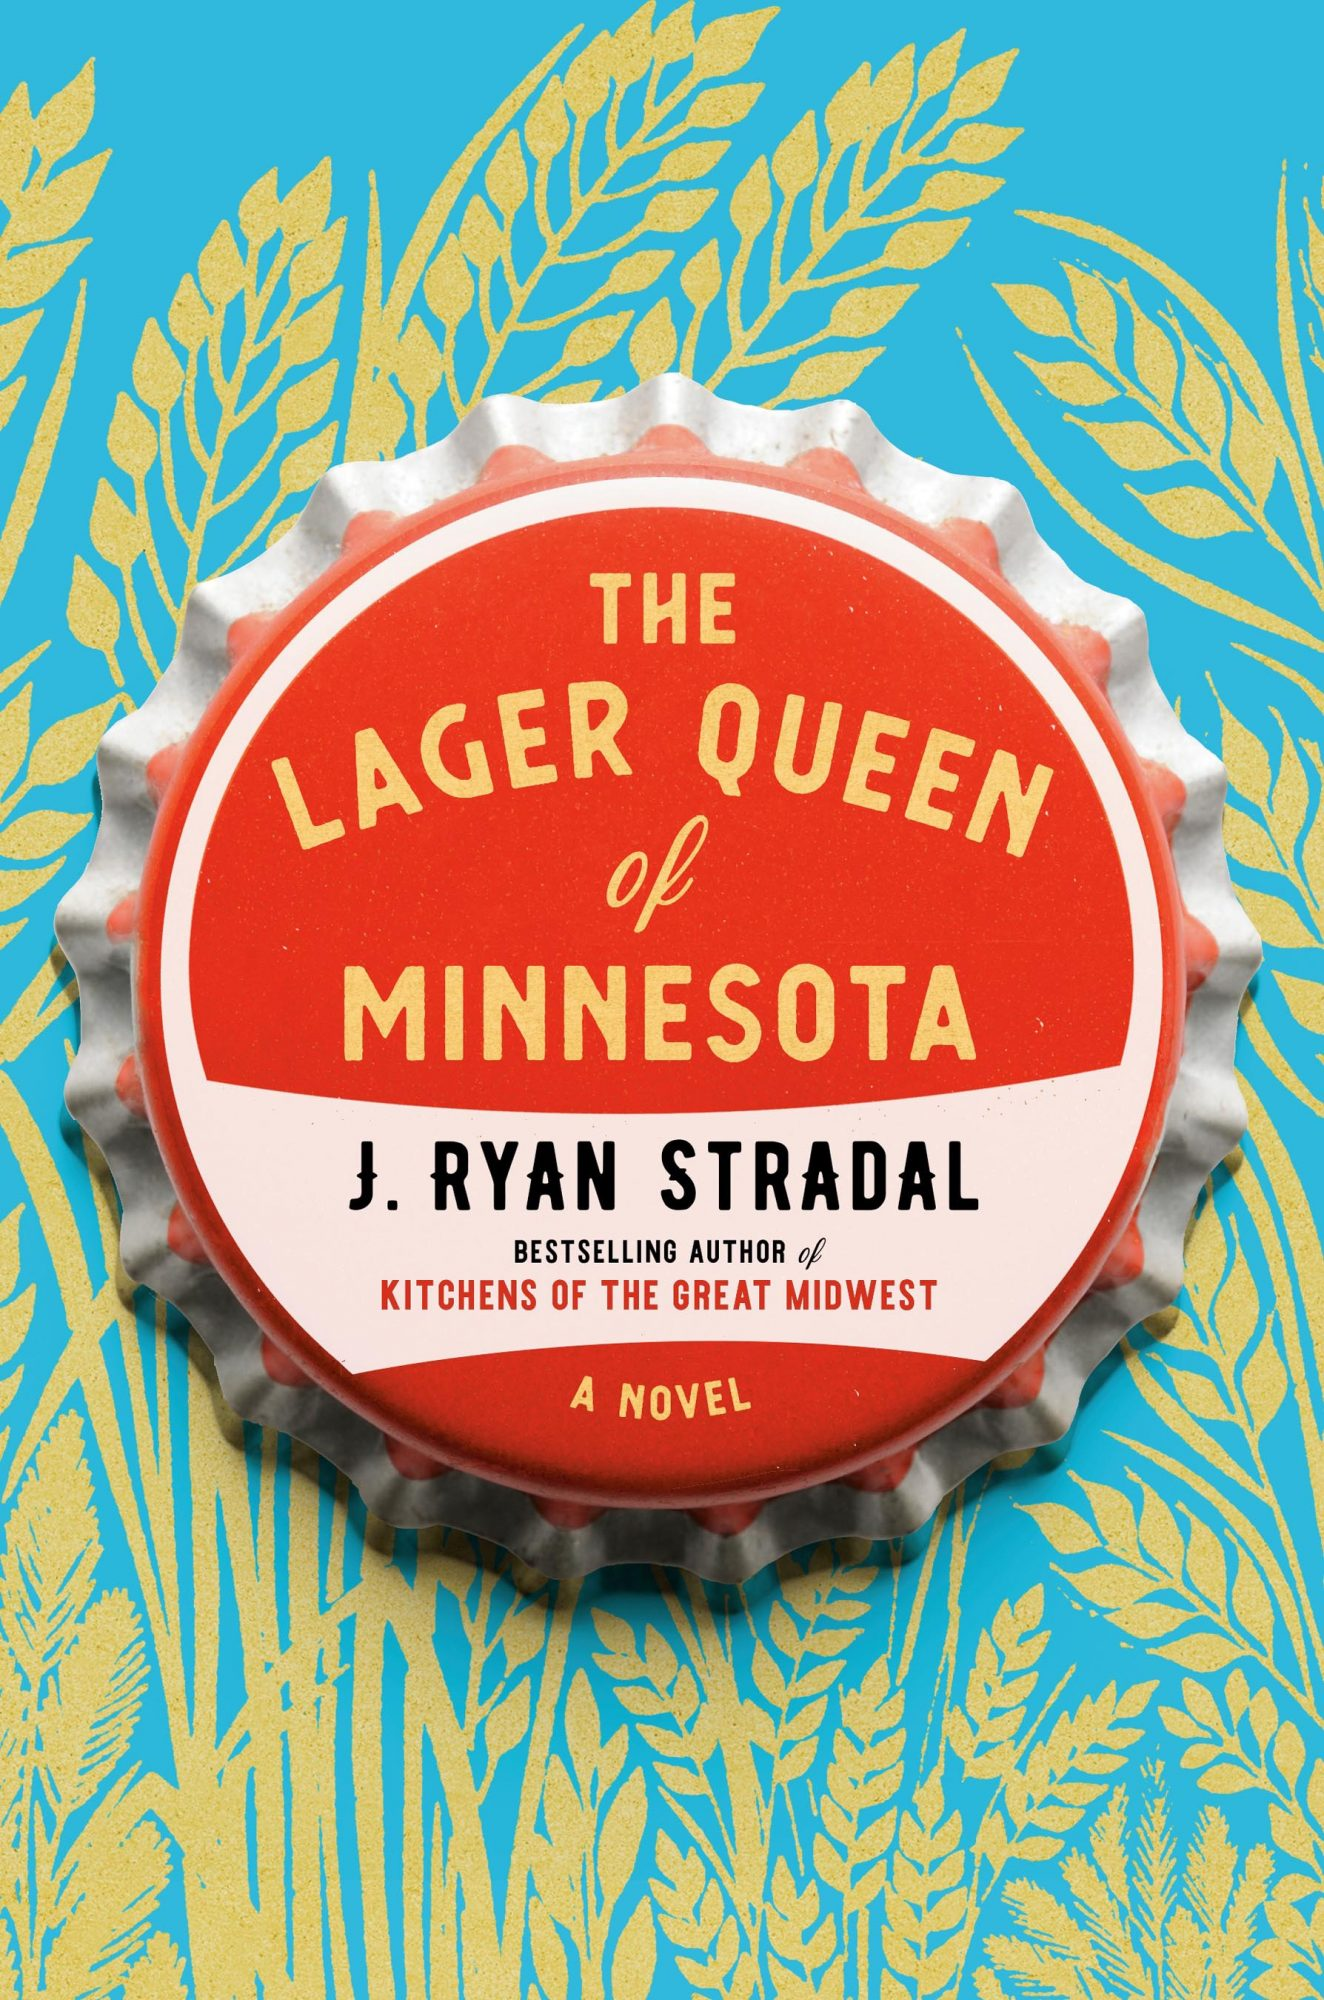 The Lager Queen of Minnesota (2019)Author: J. Ryan Stradal